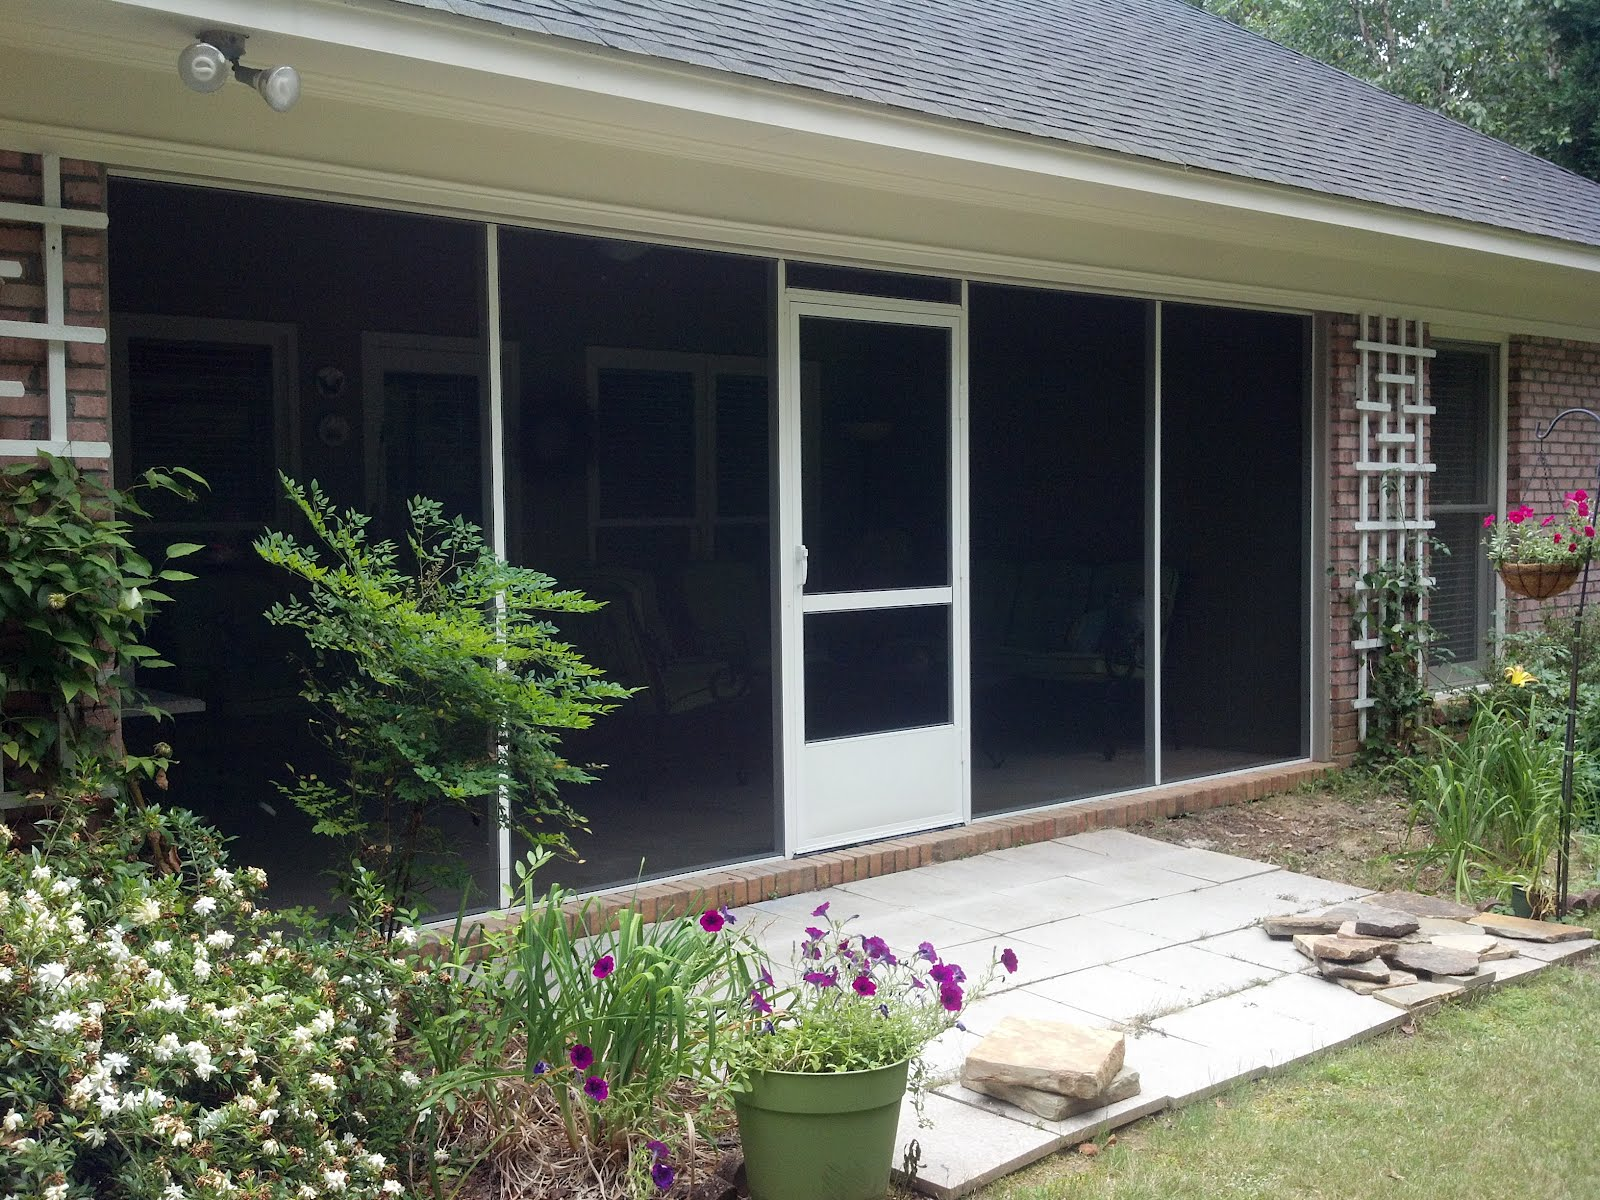 Screen Rooms Tallahassee: What Makes an Aluminum Screened ...